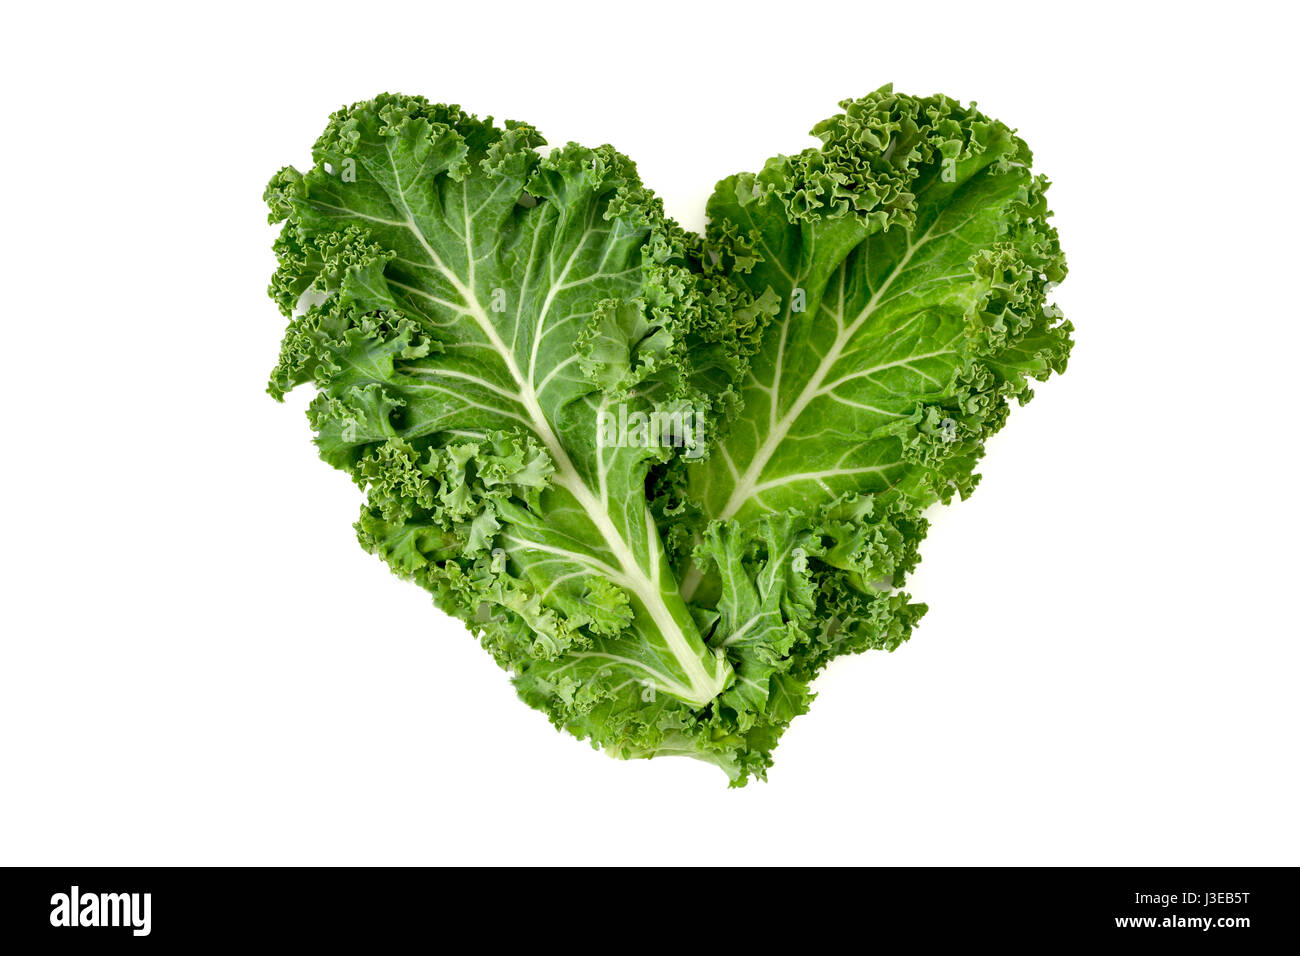 closeup of some leaves of kale forming a heart on a white background - Stock Image